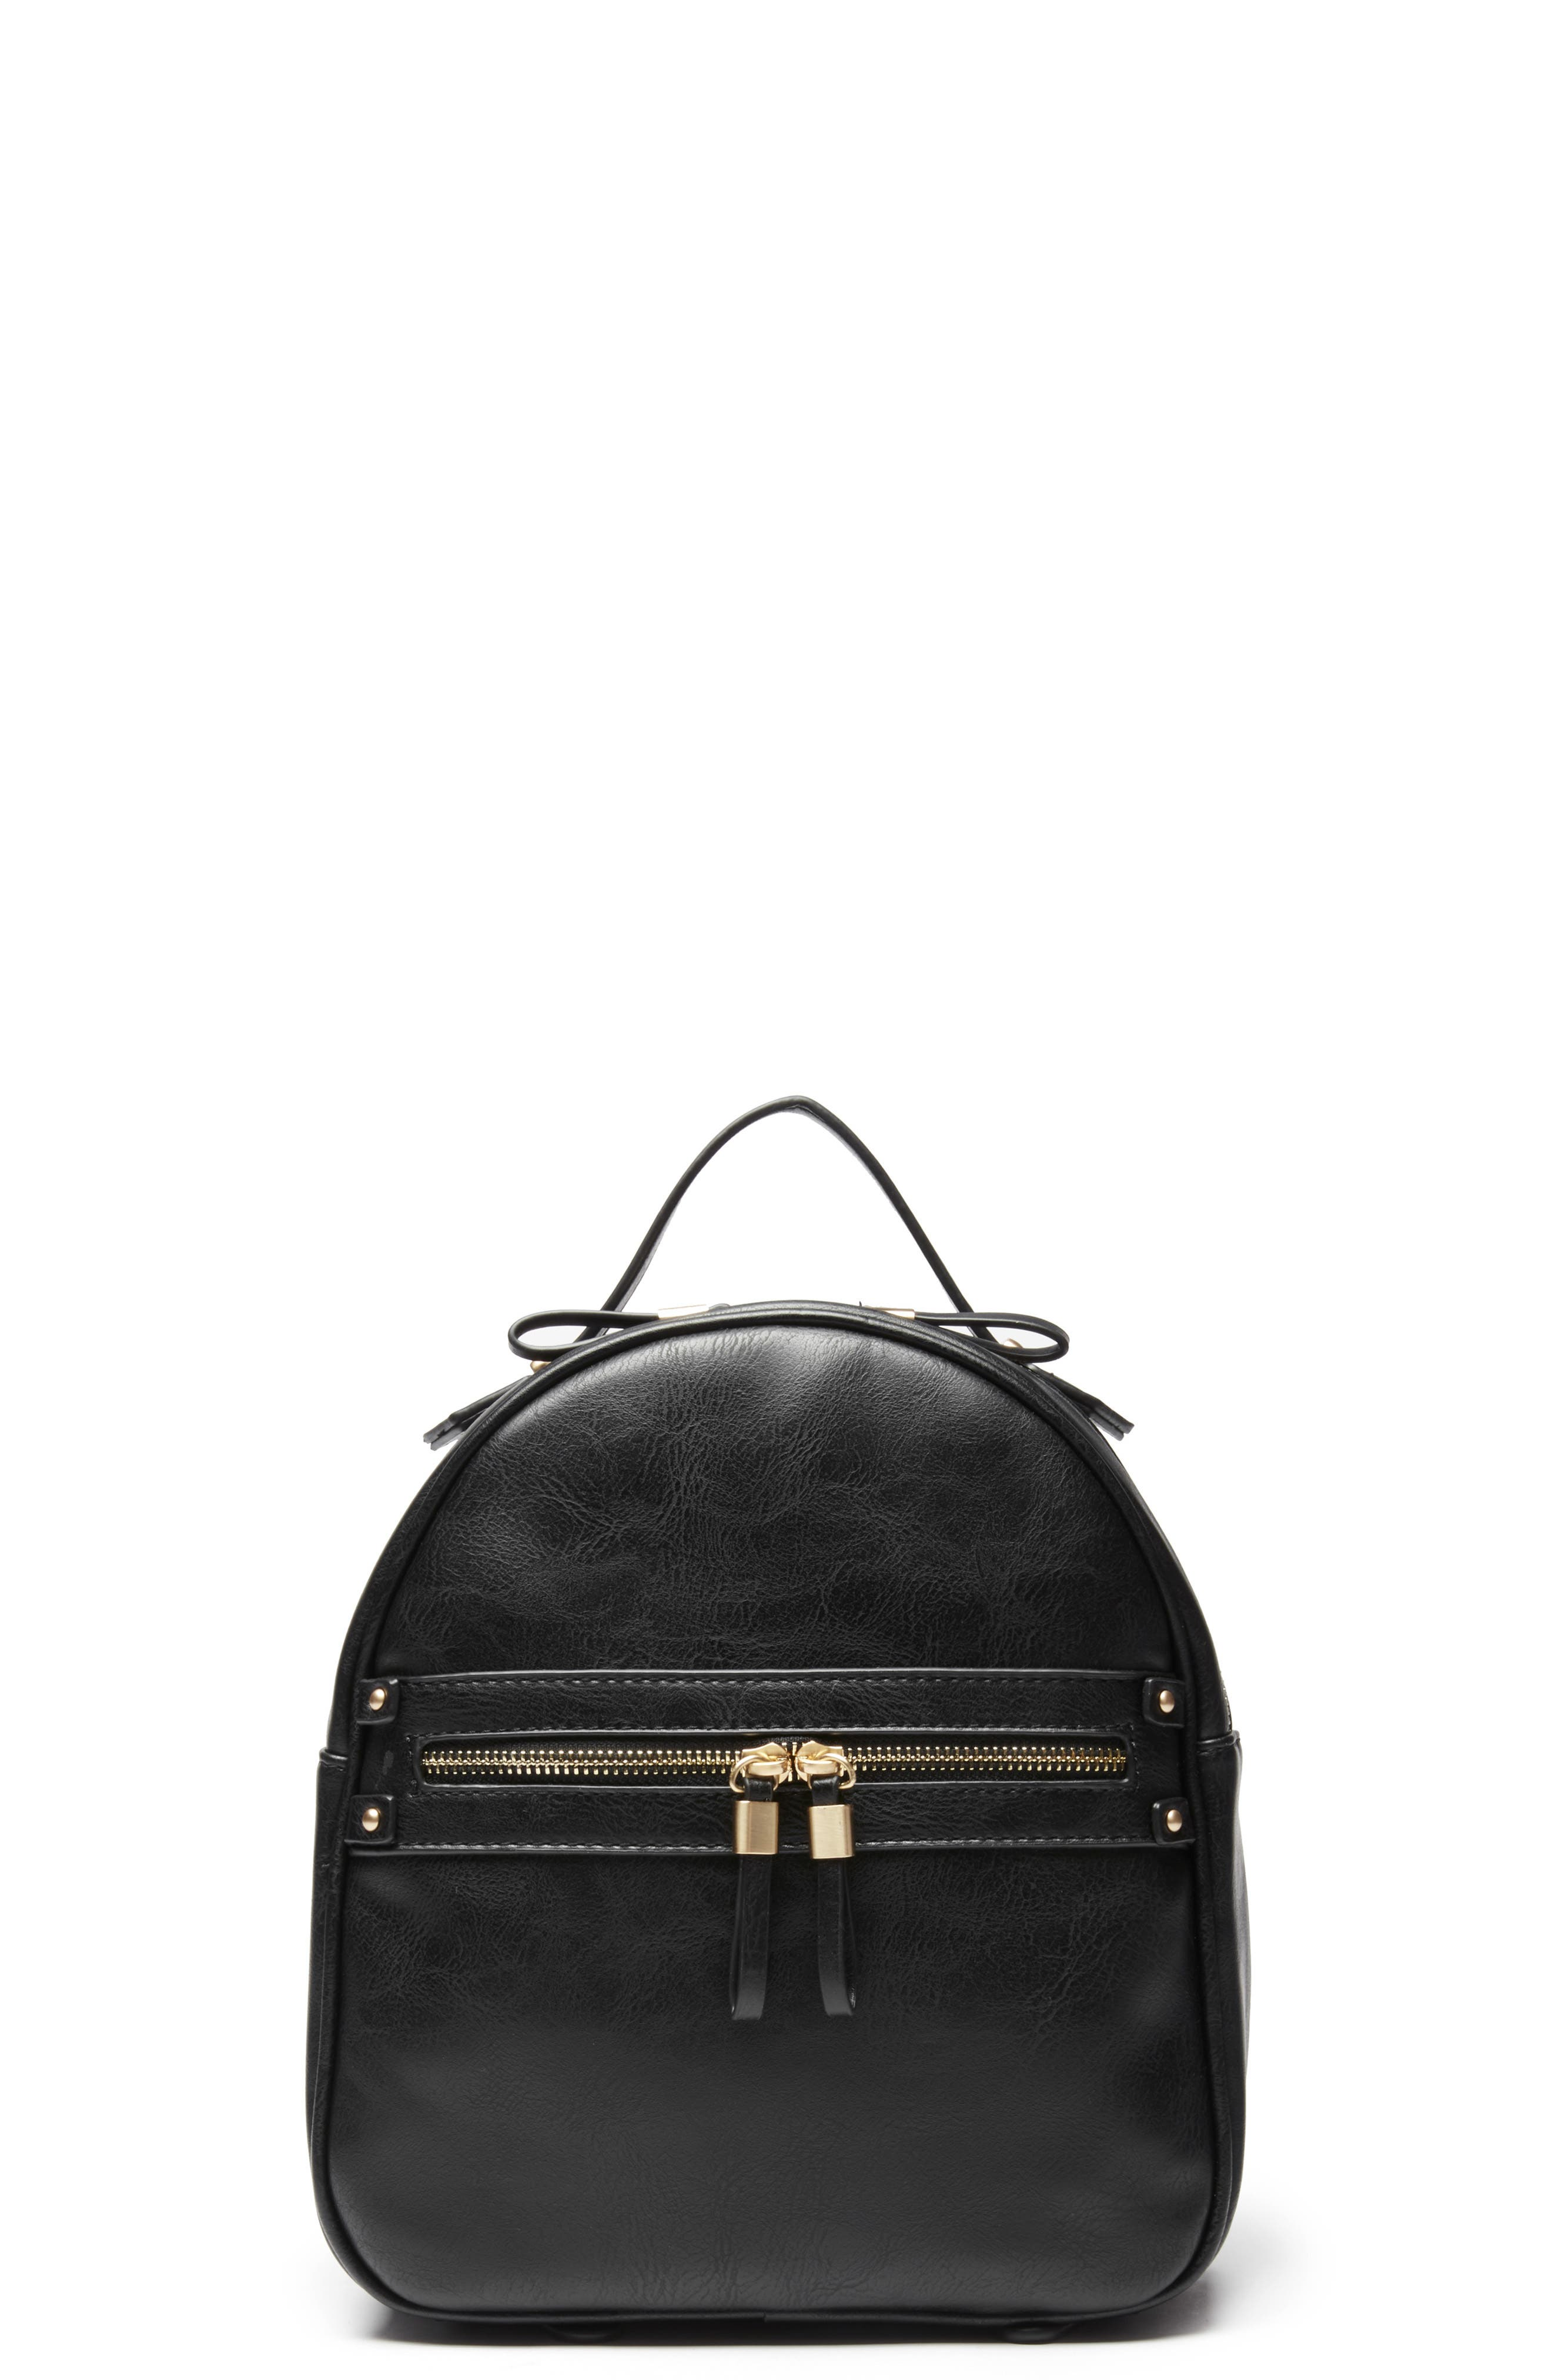 Zypa Faux Leather Backpack,                             Main thumbnail 1, color,                             001